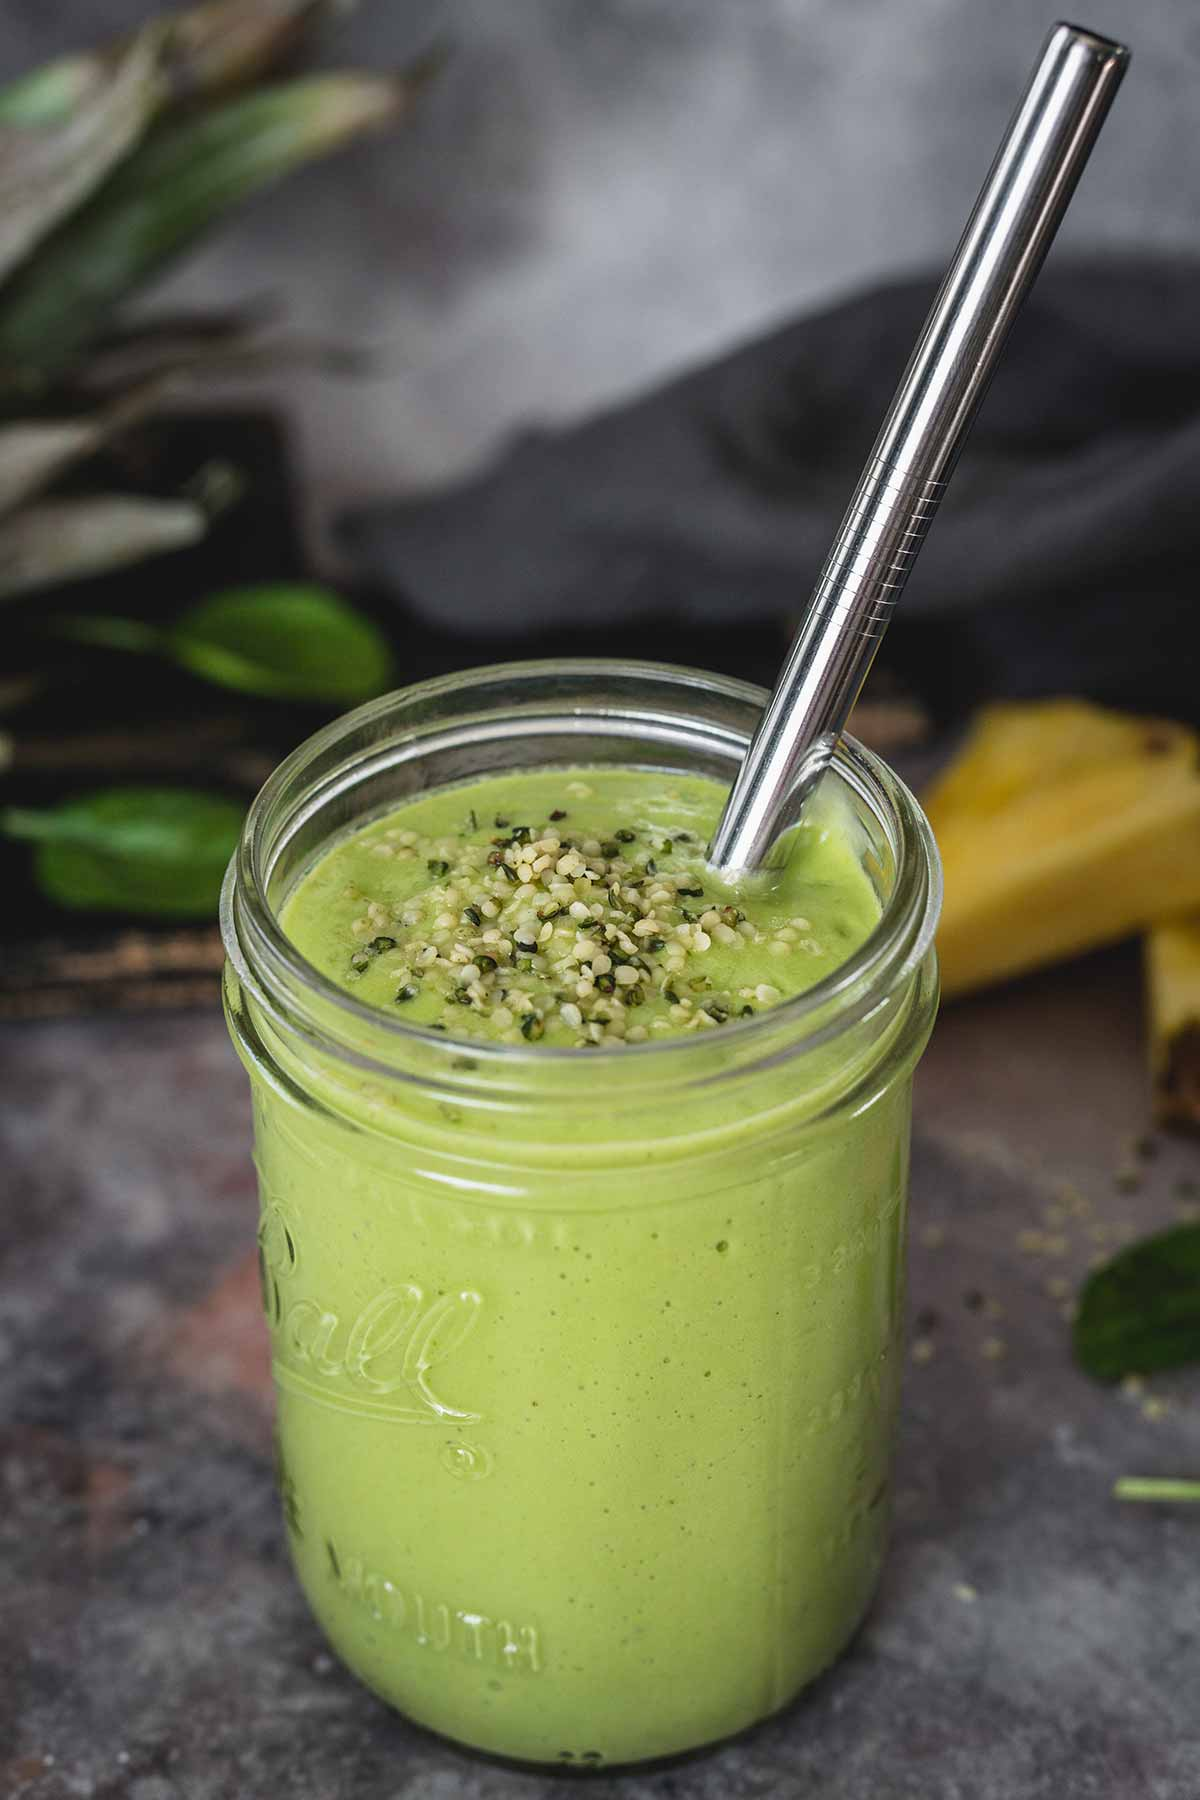 Pineapple, Banana, And Avocado Smoothie